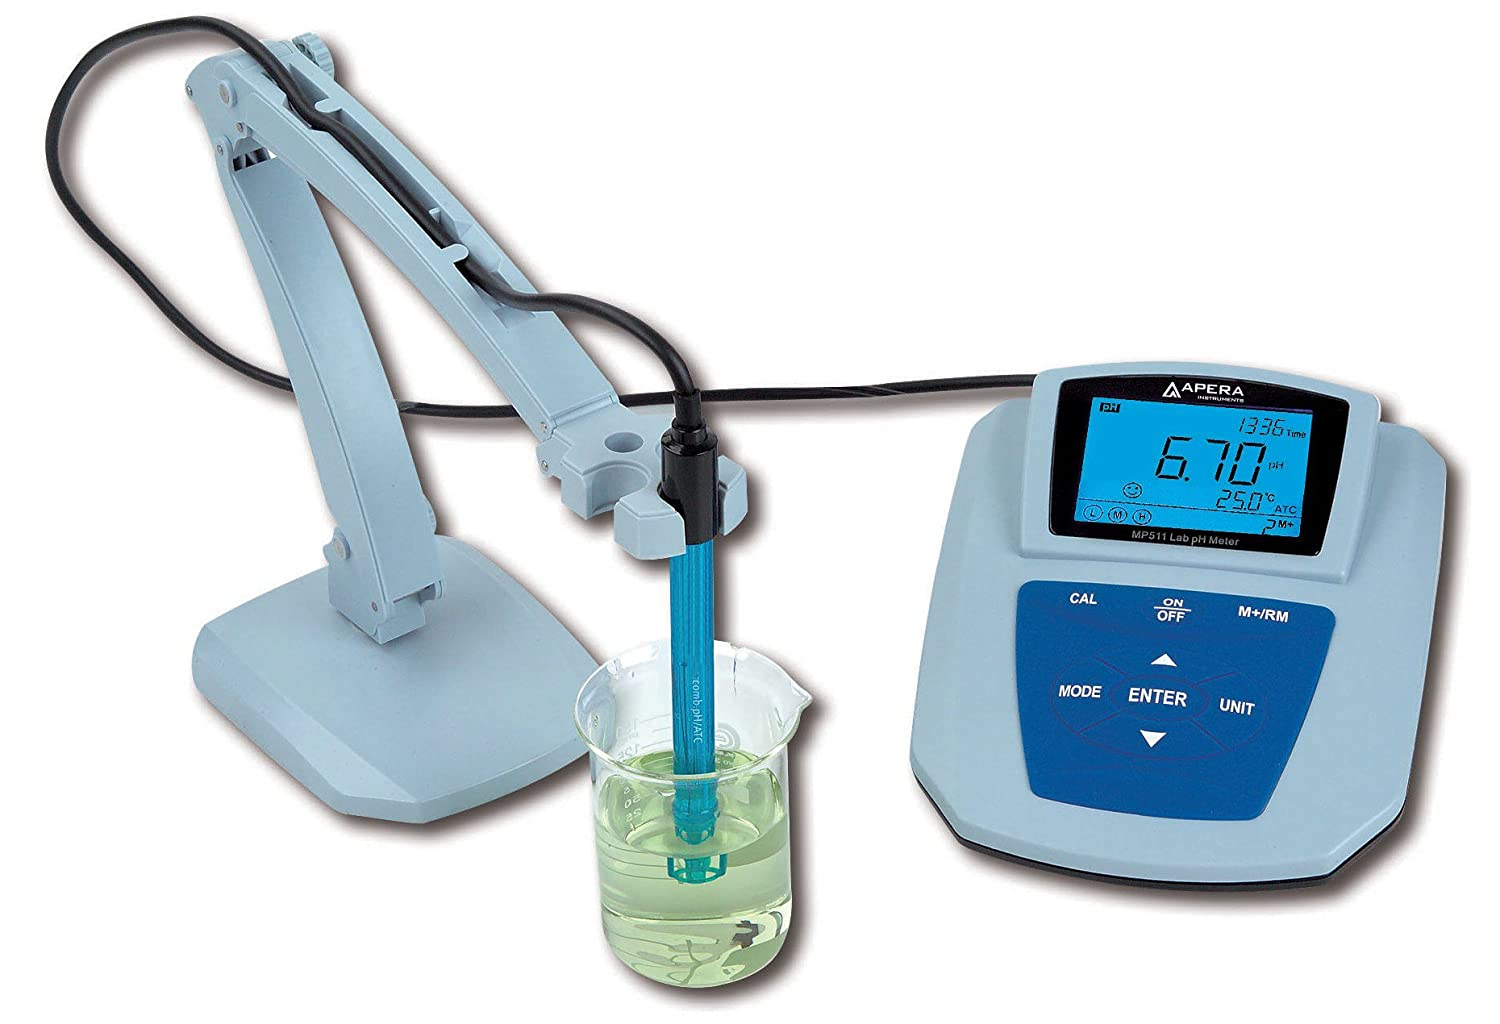 ... MP511 Benchtop pH Meter, Accuracy: ±0.01 pH, Range: -2.00-19.99 pH,  with GLP data management & Software Support: Amazon.com: Industrial &  Scientific